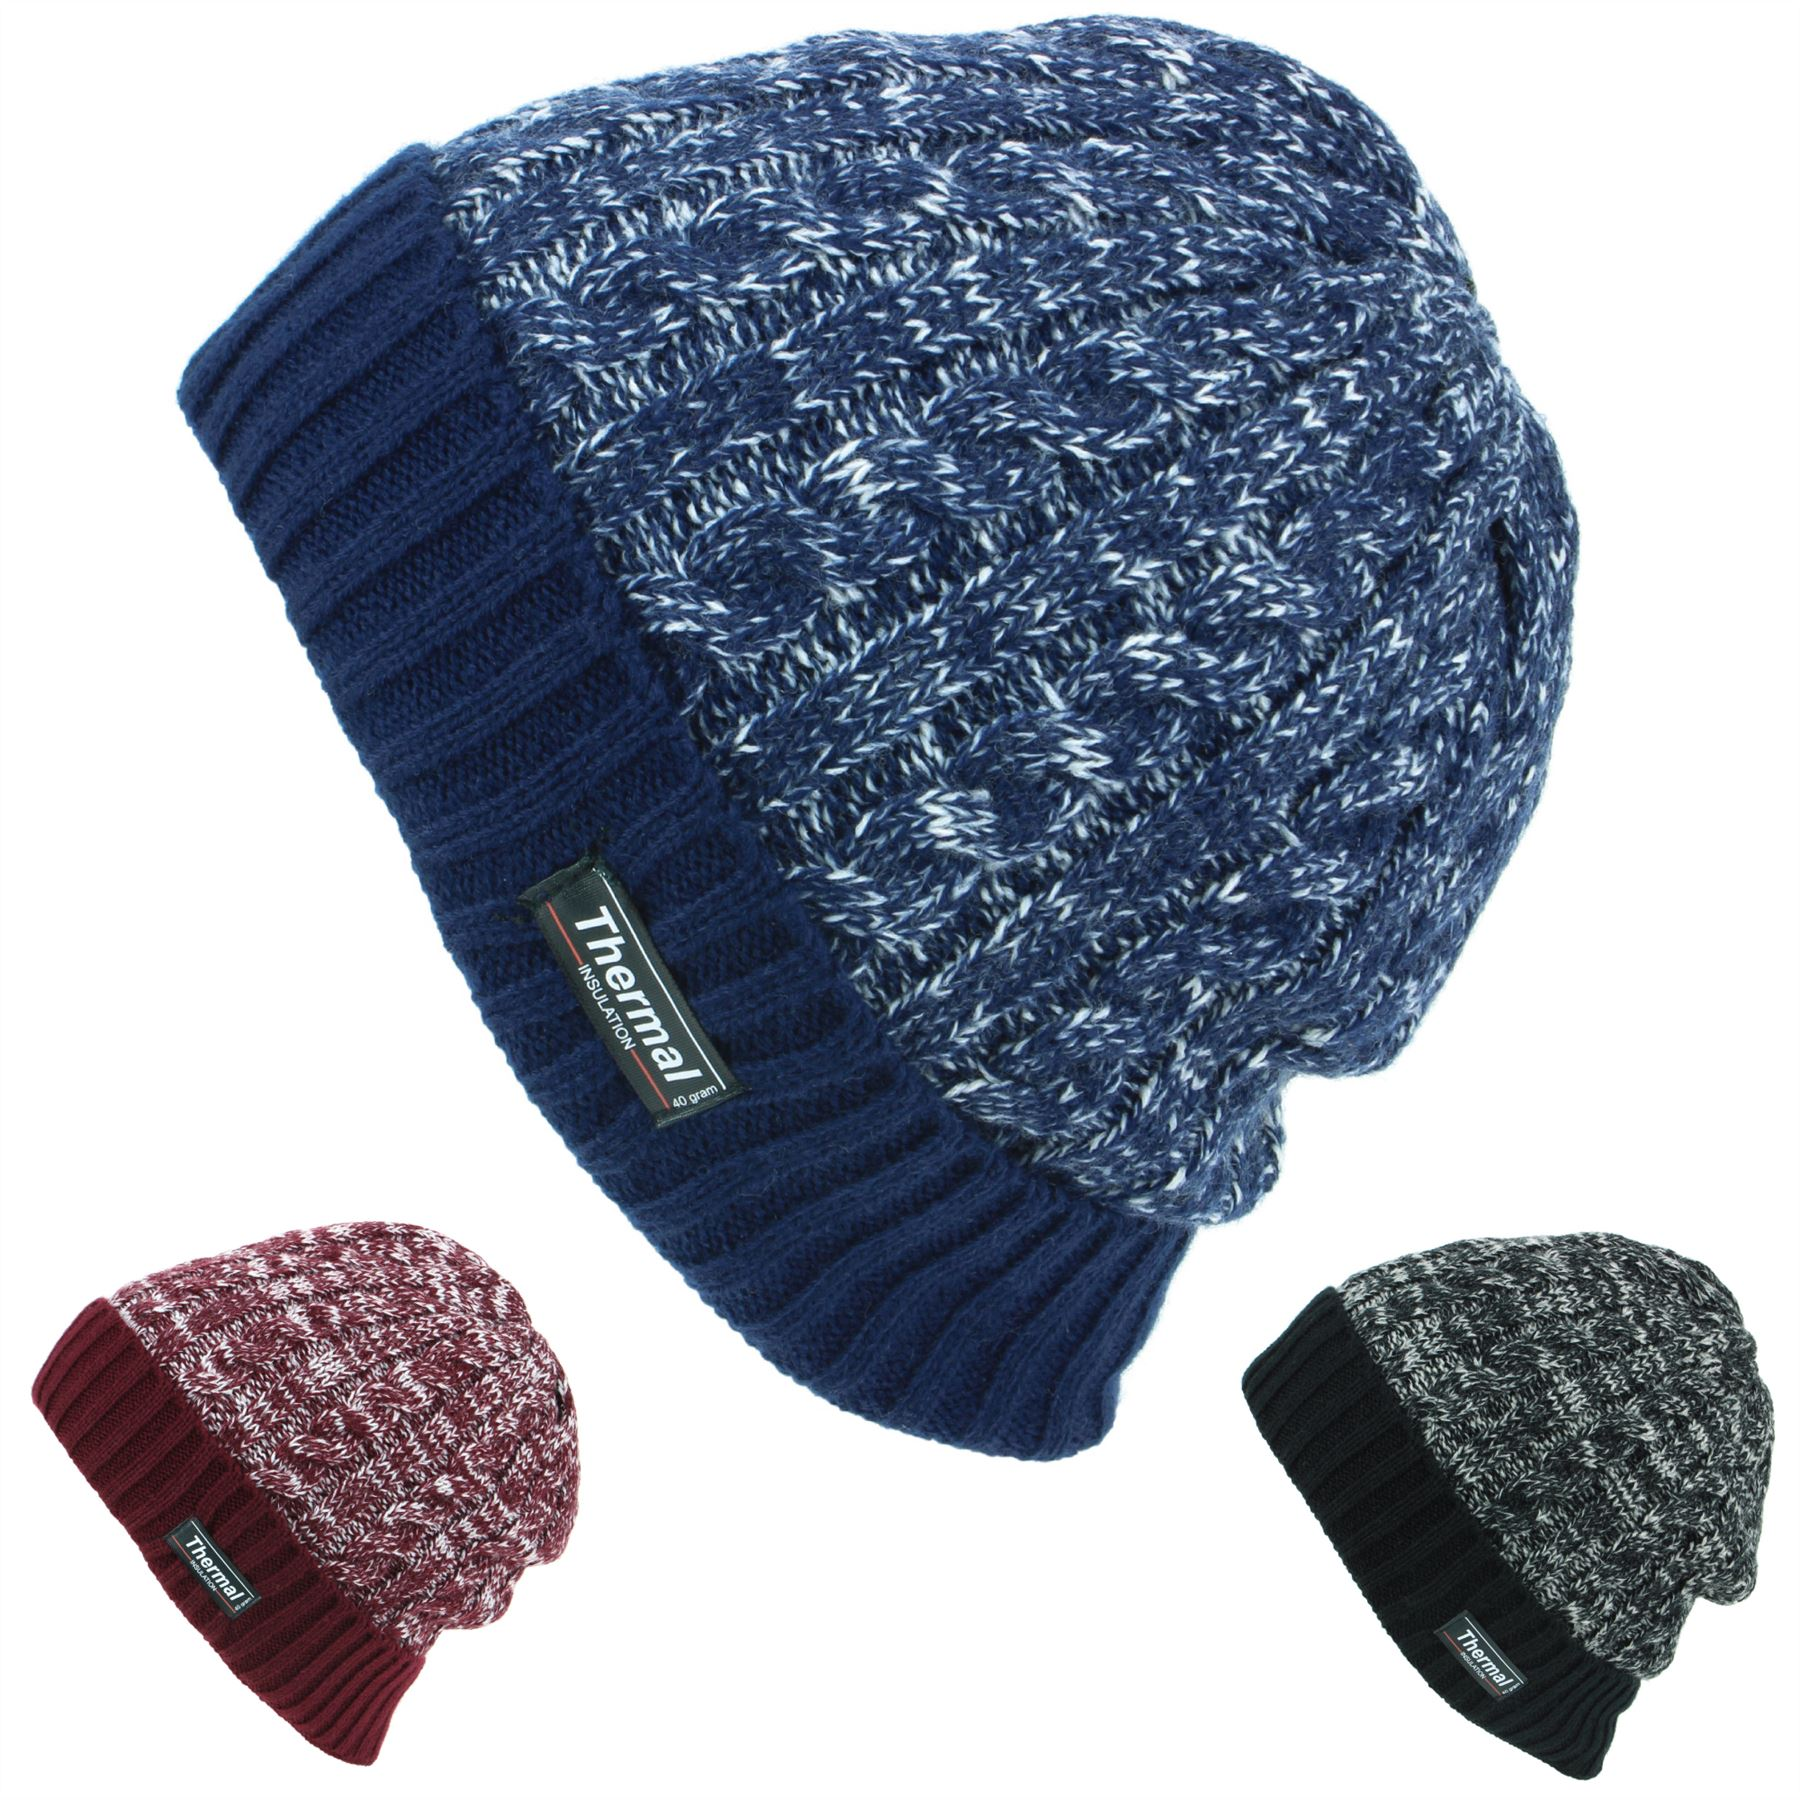 d89d4c20b67 Details about Beanie Hat Cap Warm Winter BLACK BLUE MAROON Thinsulate 3M  Men Ladies Knit Ski